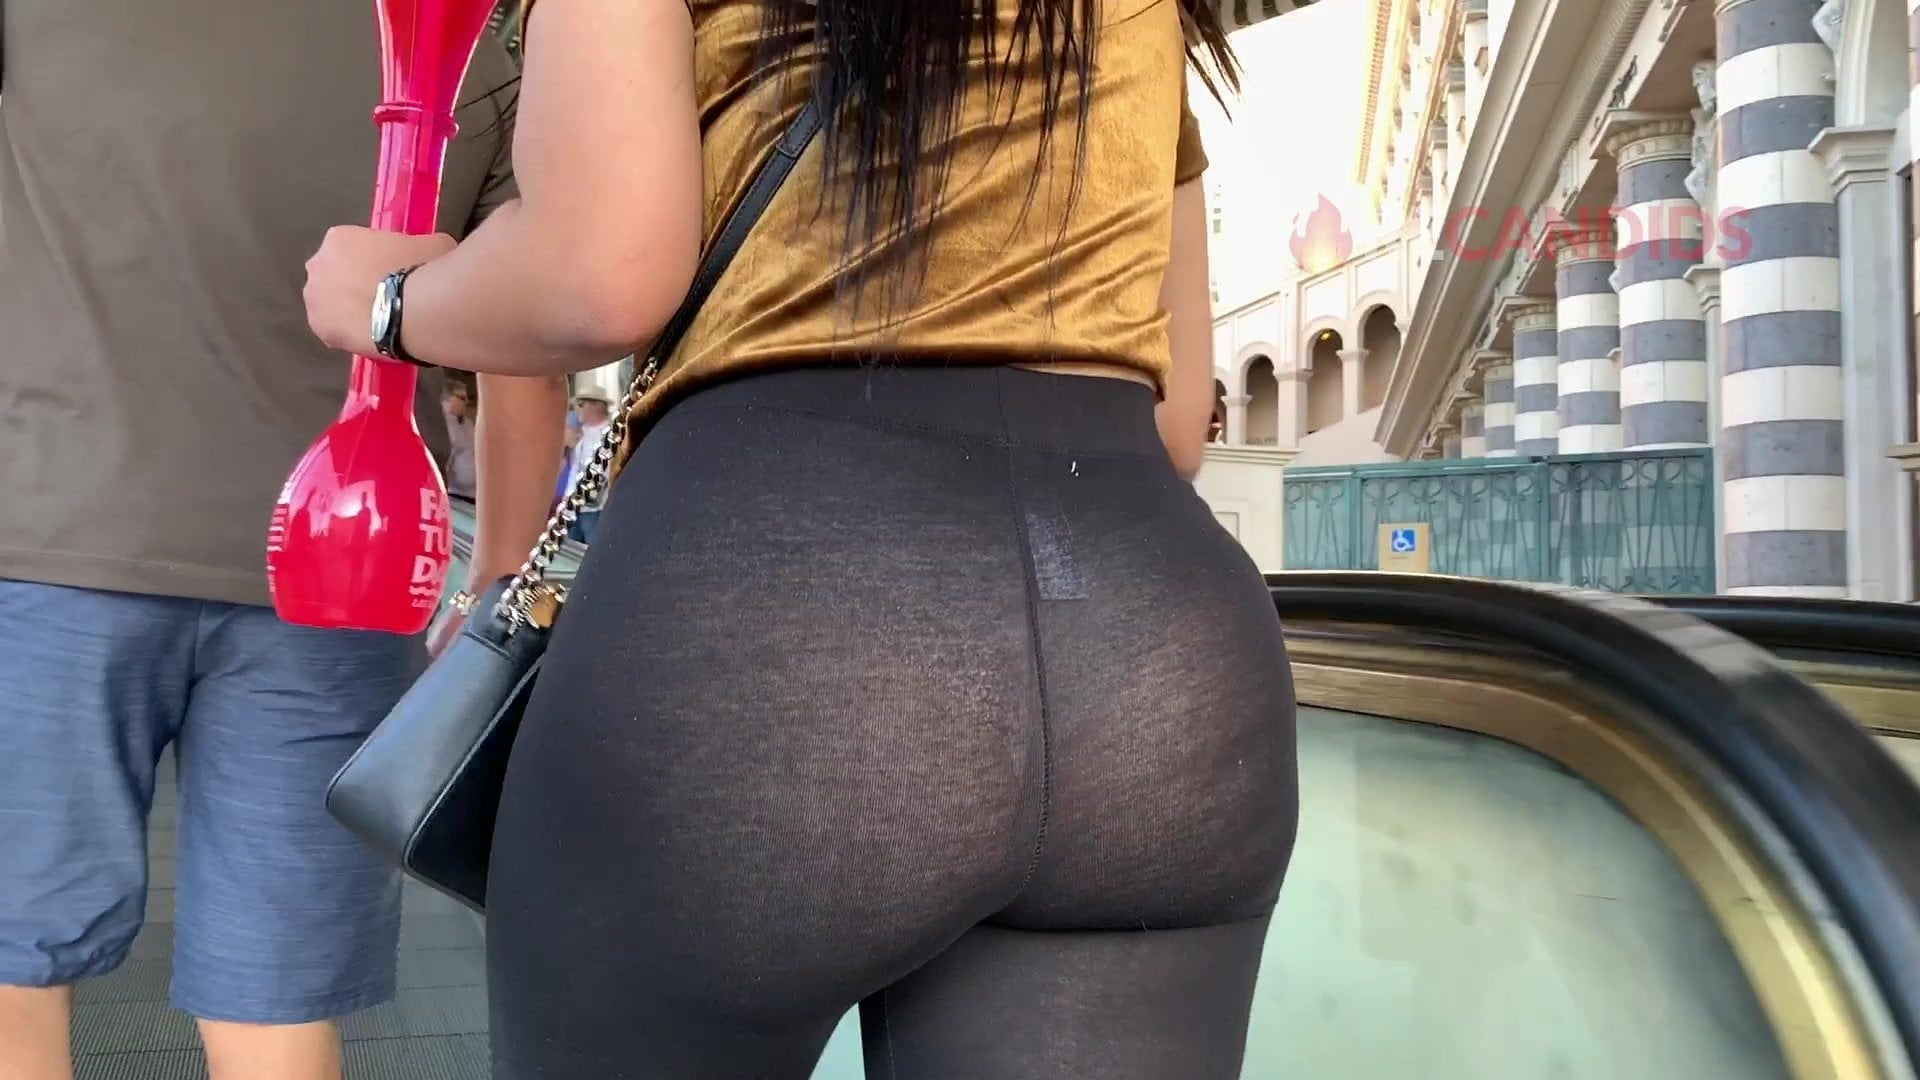 Public See Through Spandex